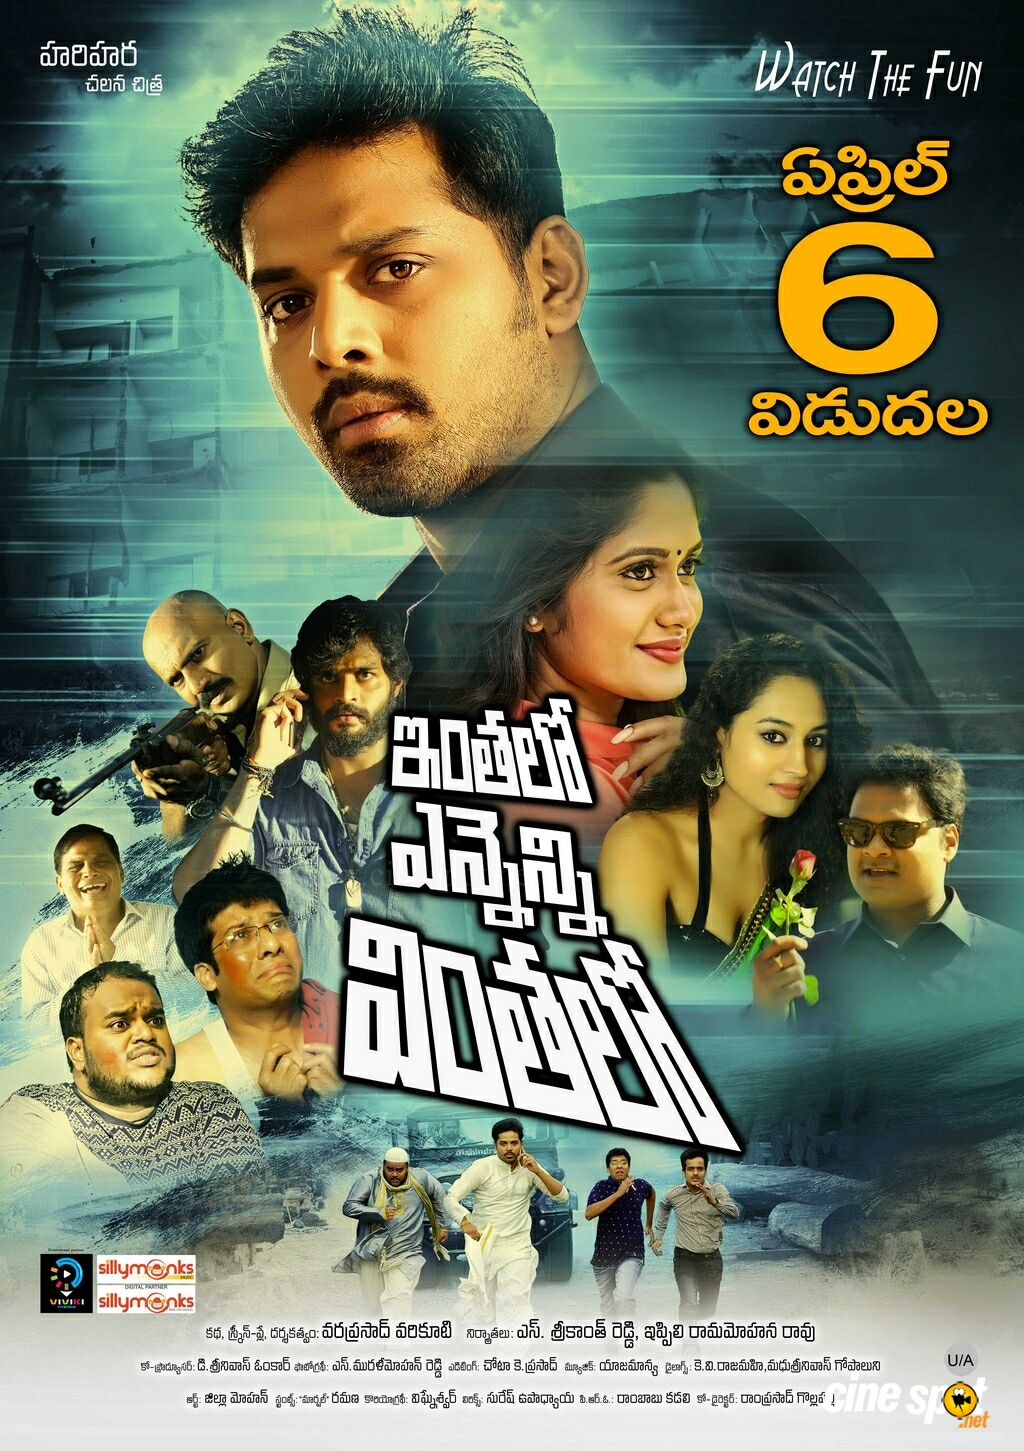 Inthalo Ennenni Vinthalo Release Date Wallpapers (4)